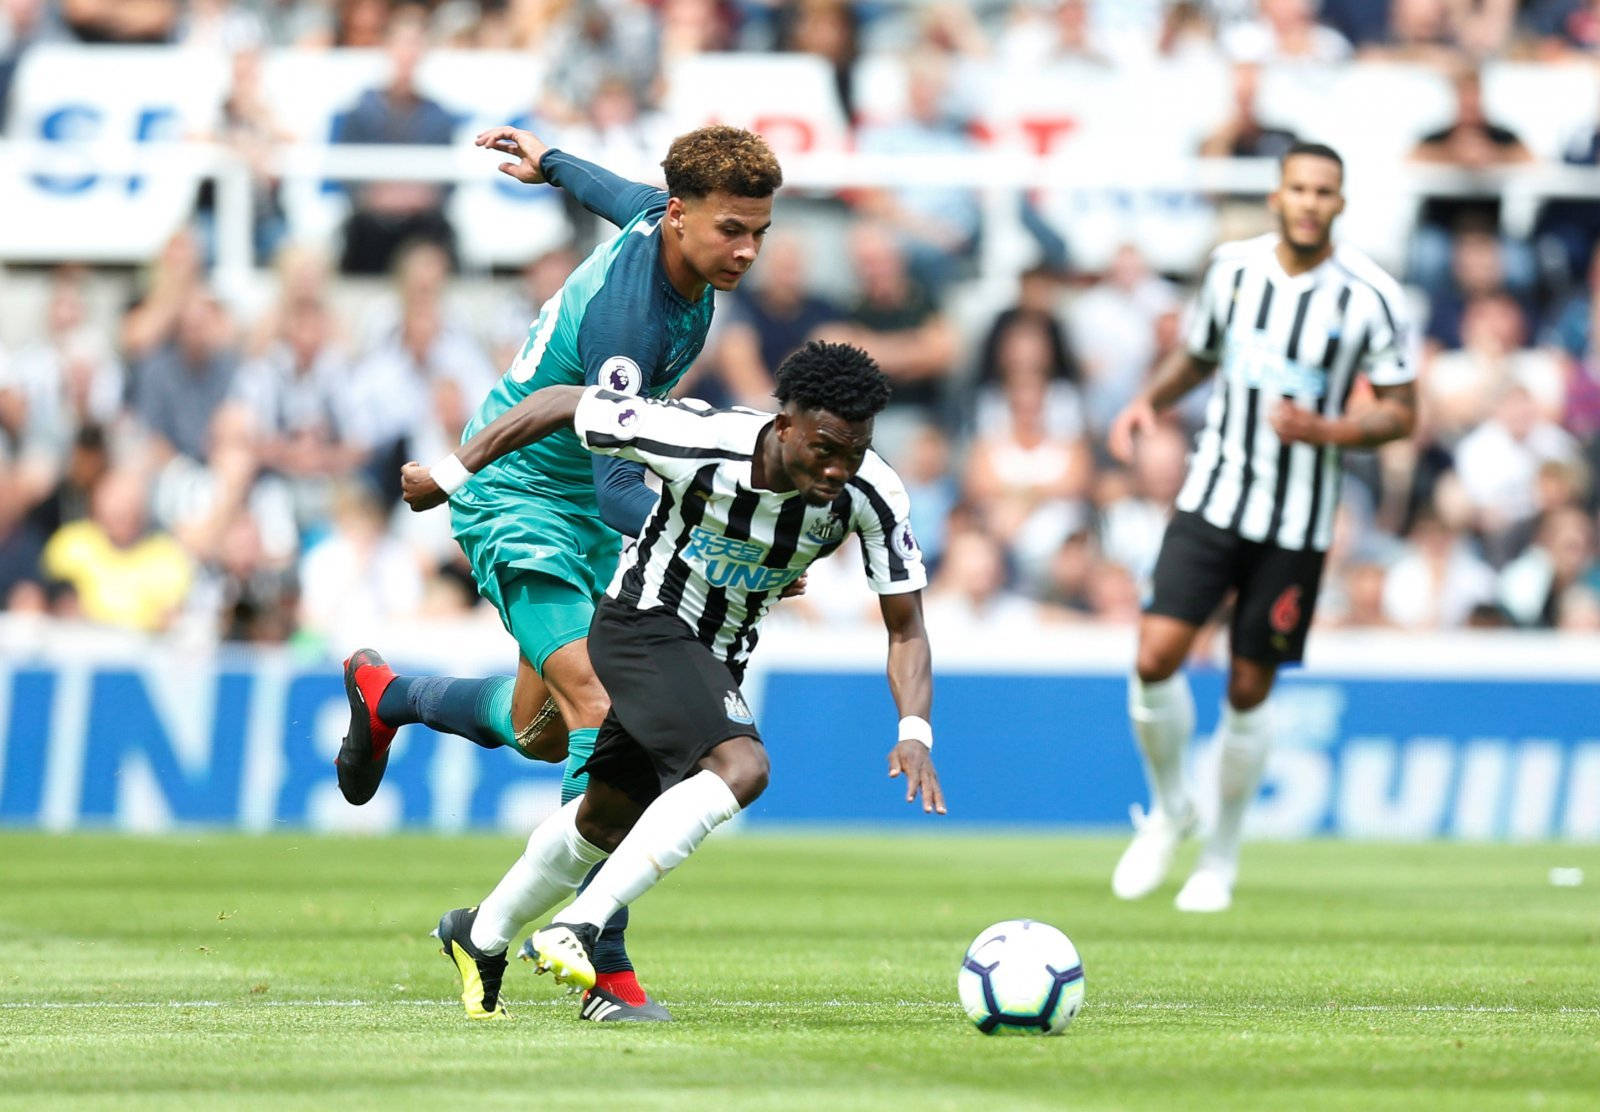 Christian Atsu is the jet-heeled winger Celtic need to sign